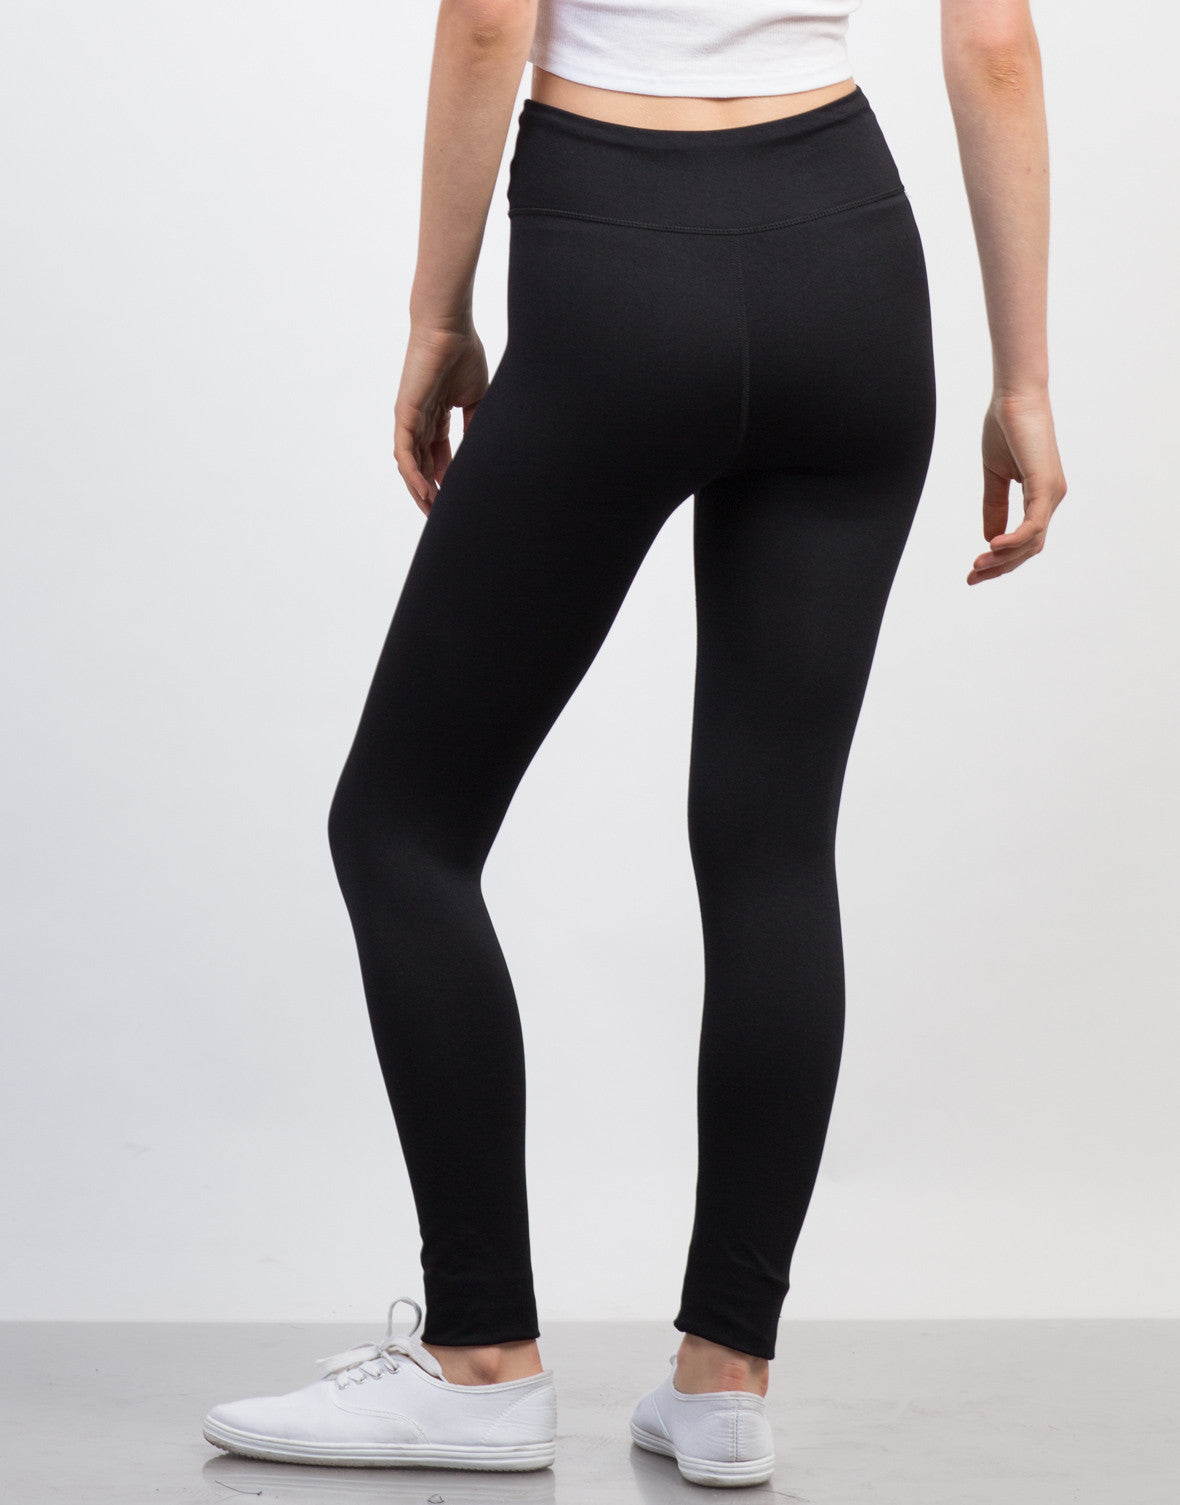 Back View of Basic Active Leggings